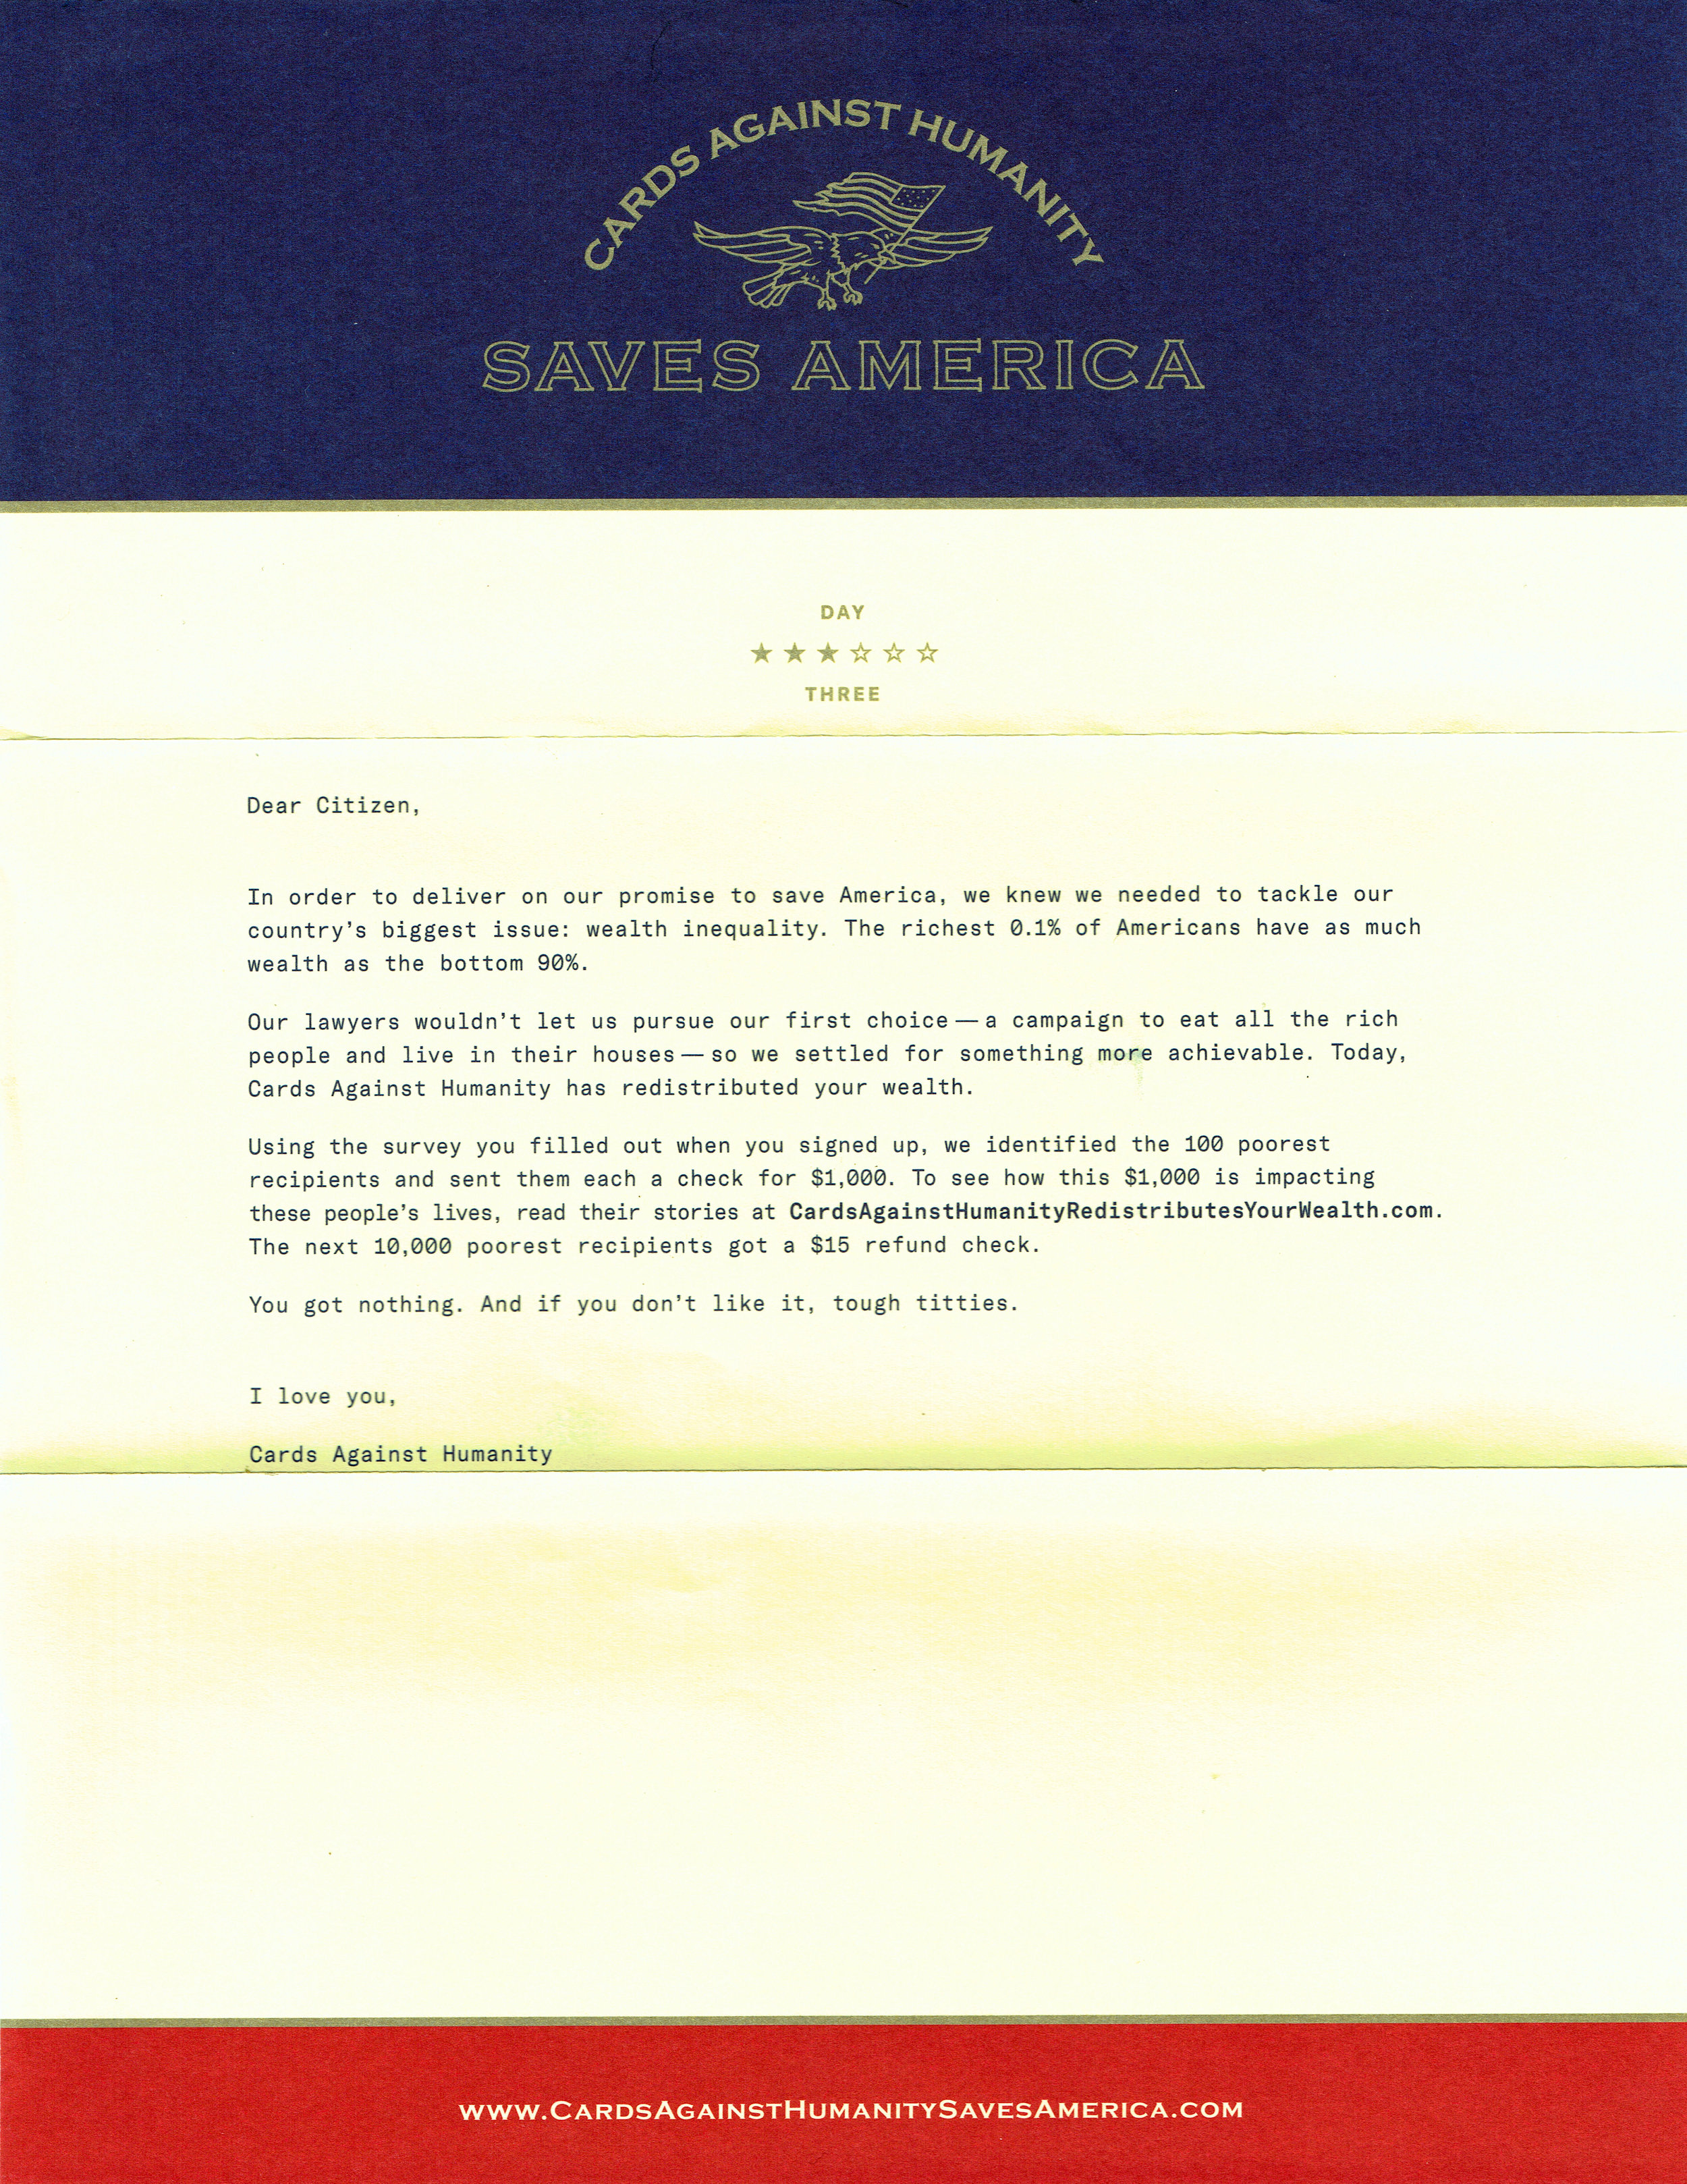 Cards Against Humanity Saves America - Day 3 Cover Letter